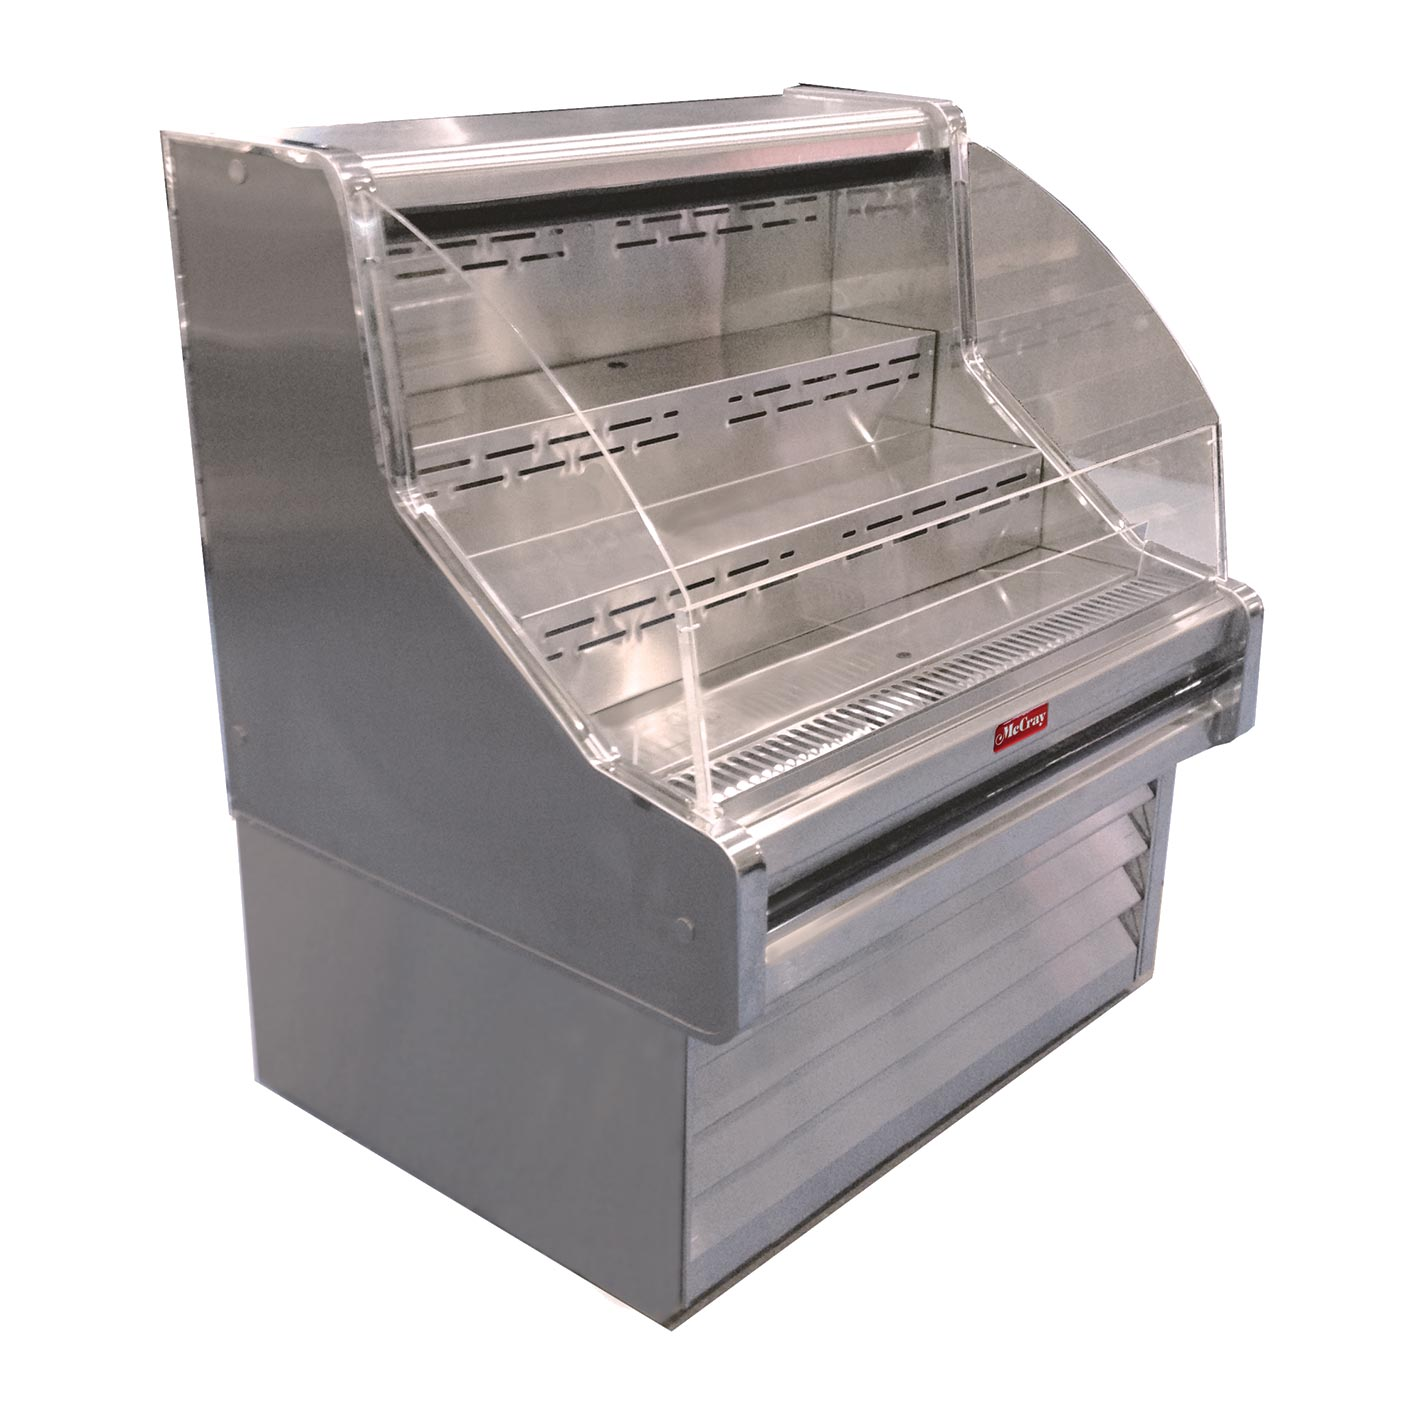 Howard-McCray SC-OS35E-3C-LED merchandiser, open refrigerated display